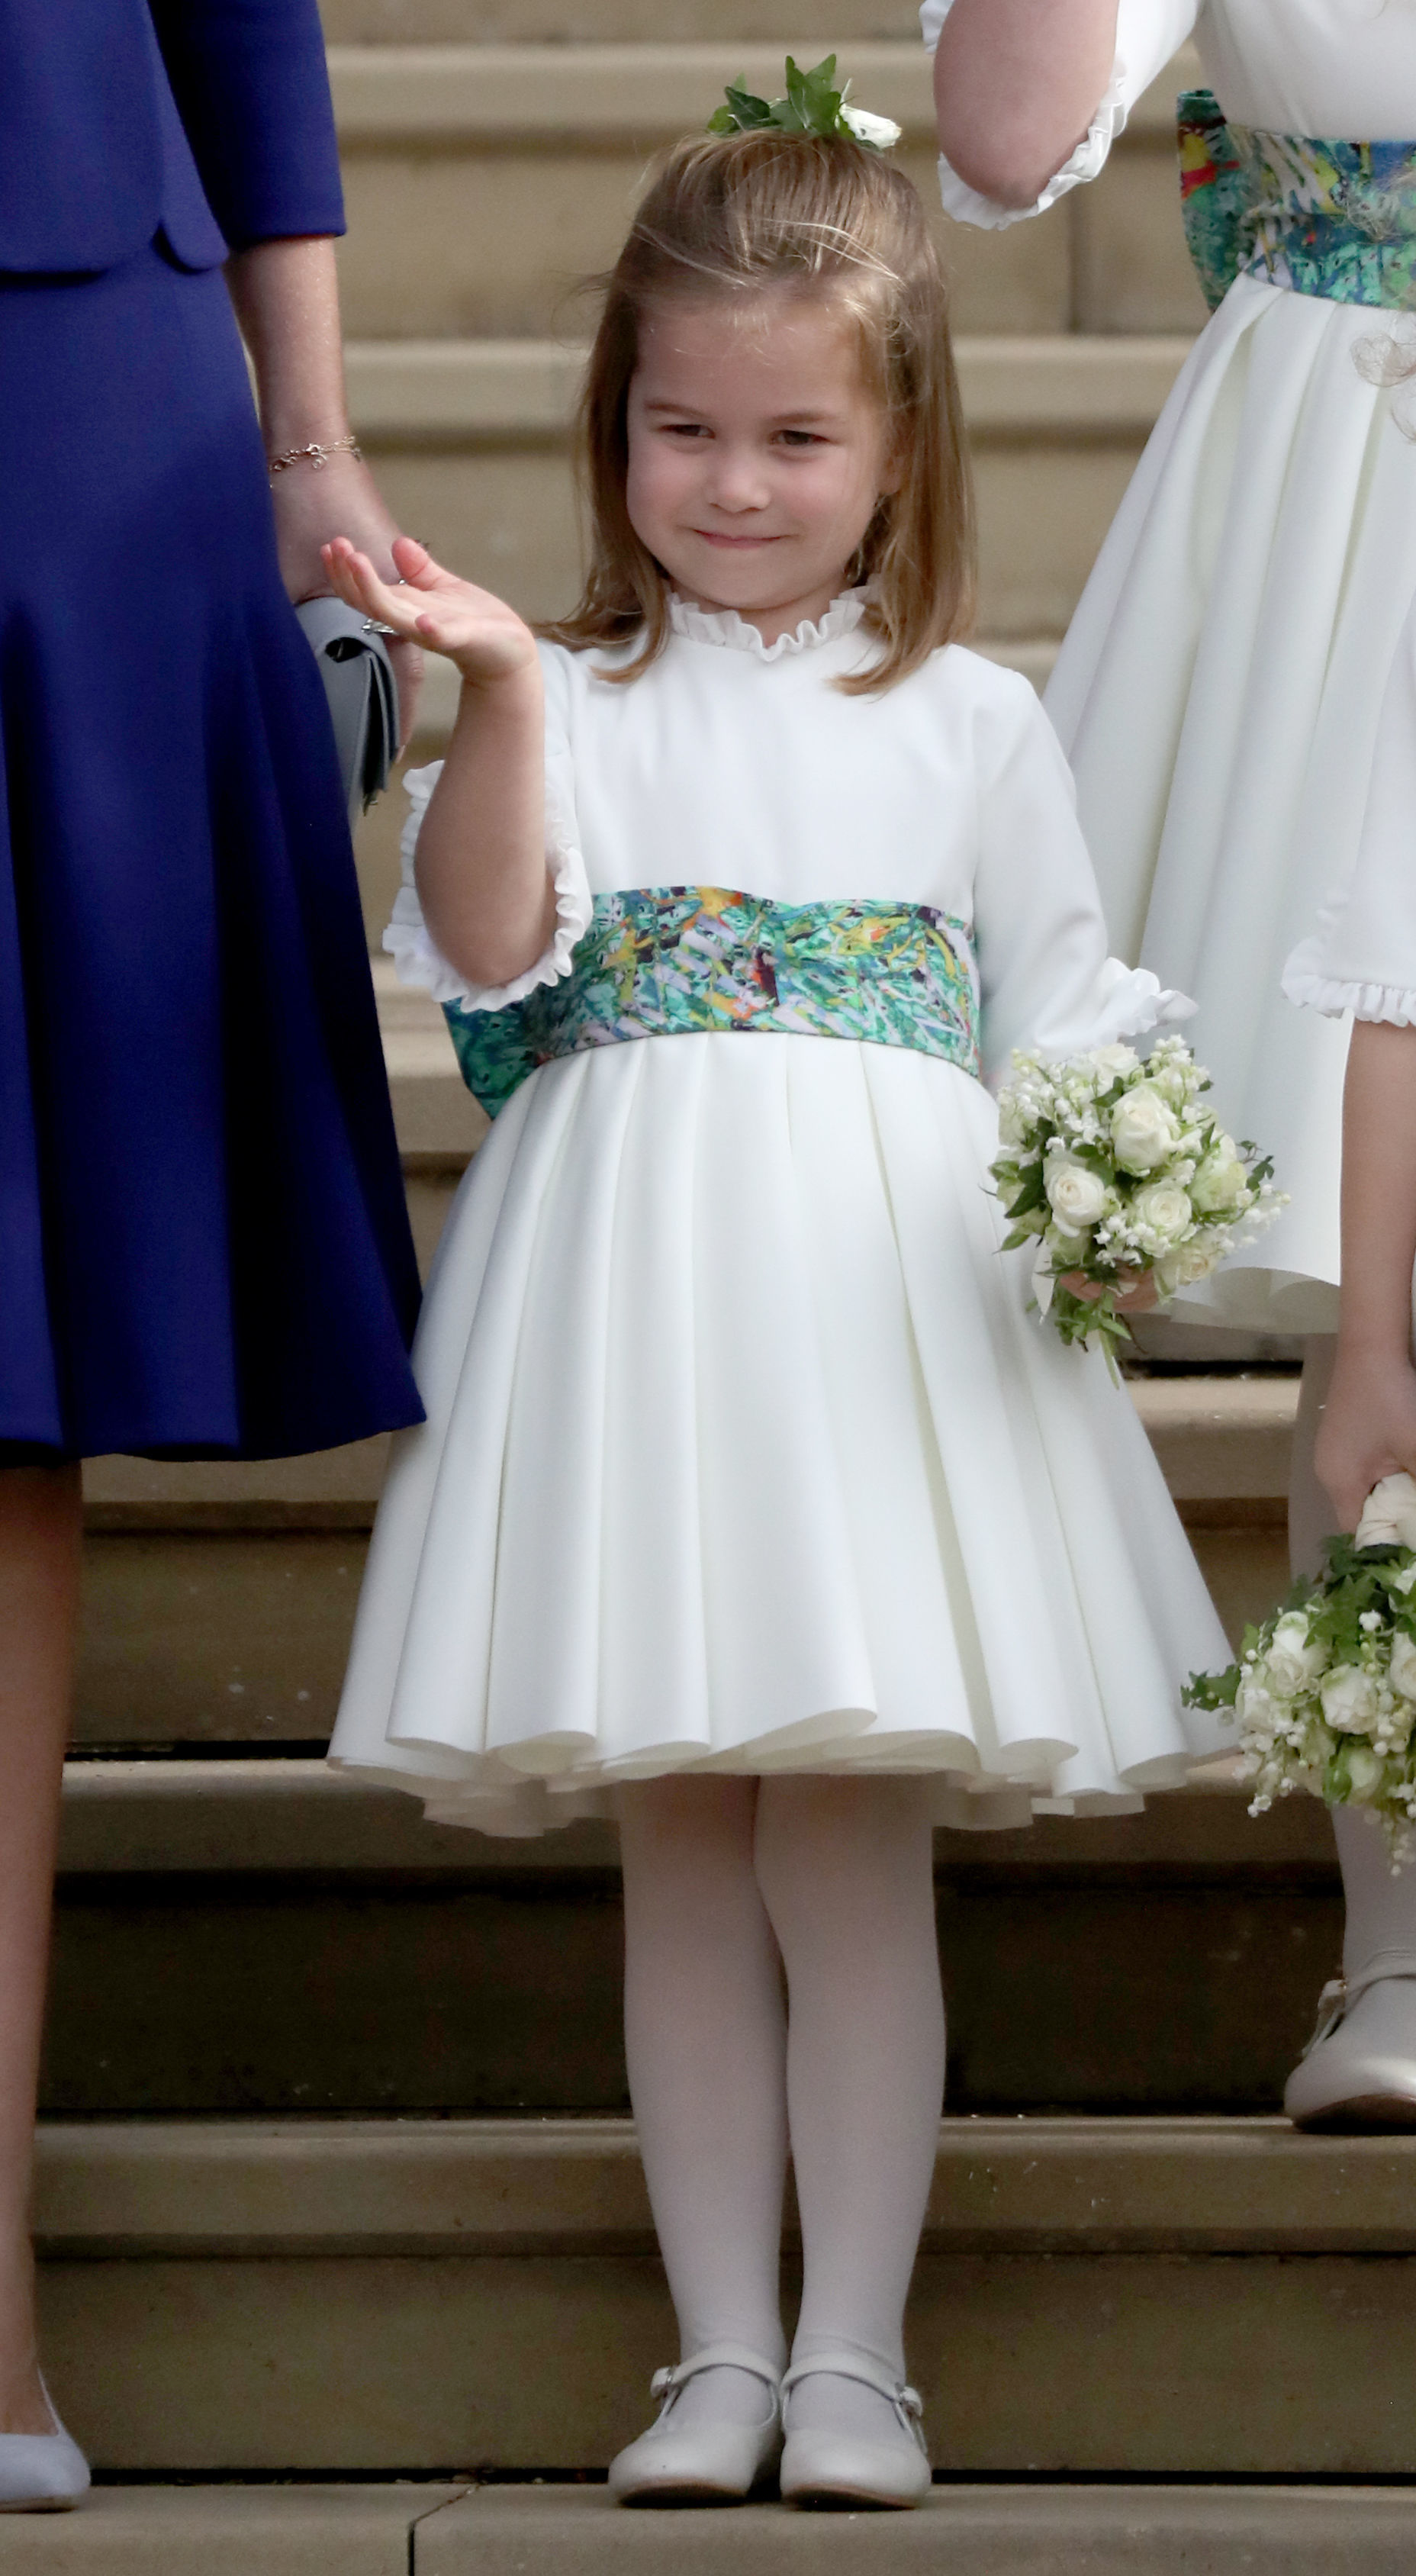 Bridesmaid Princess Charlotte of Cambridge waves as she stands on the steps after the wedding of Princess Eugenie of York and Jack Brooksbank at St. George's Chapel on October 12, 2018 in Windsor, England.